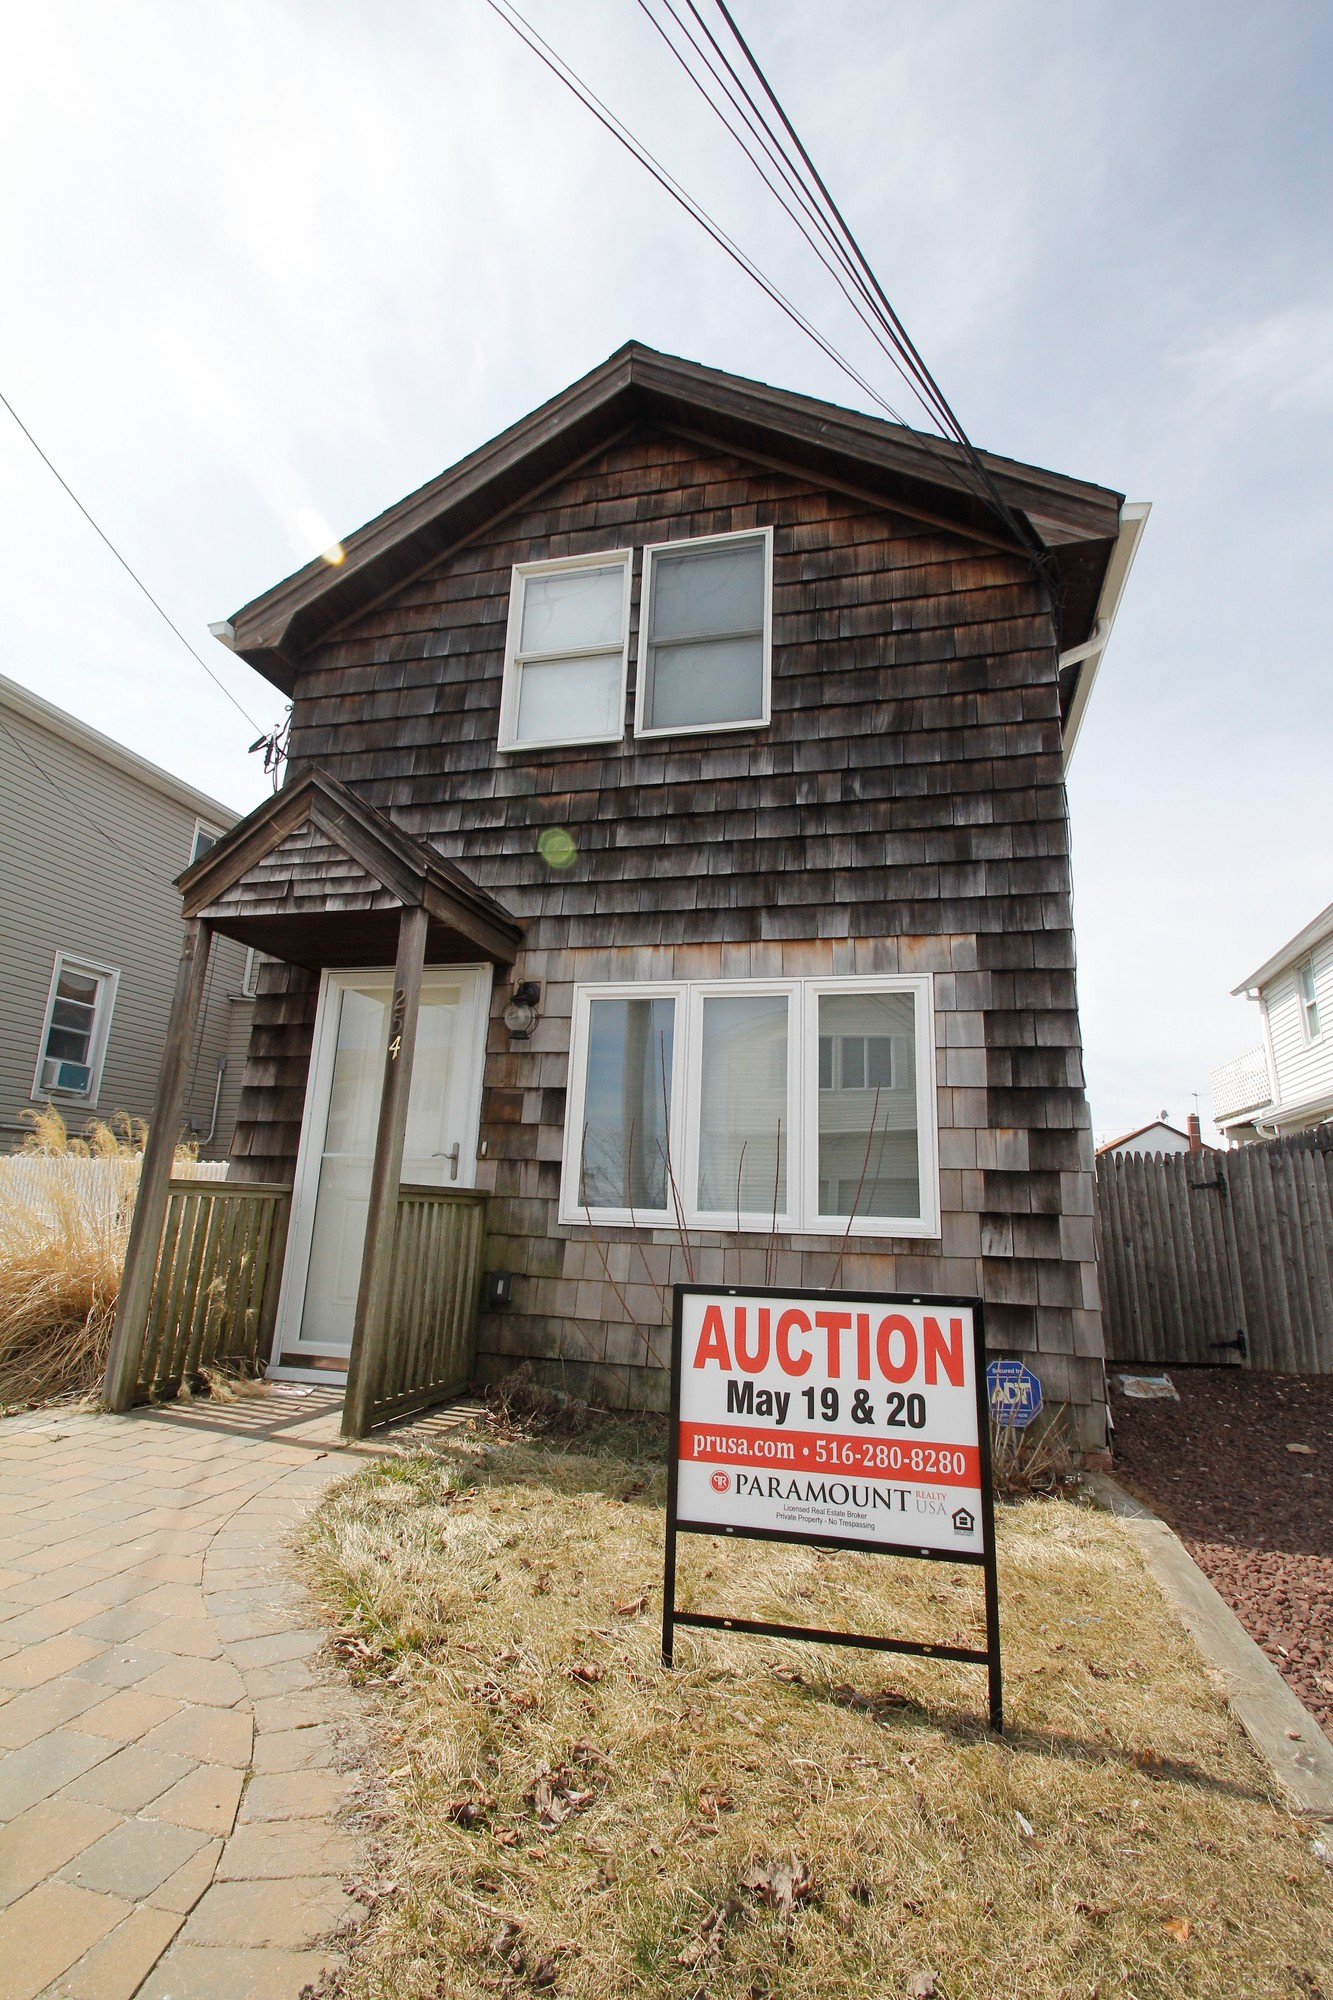 This Sandy damaged house in Freeport was up for auction last week.